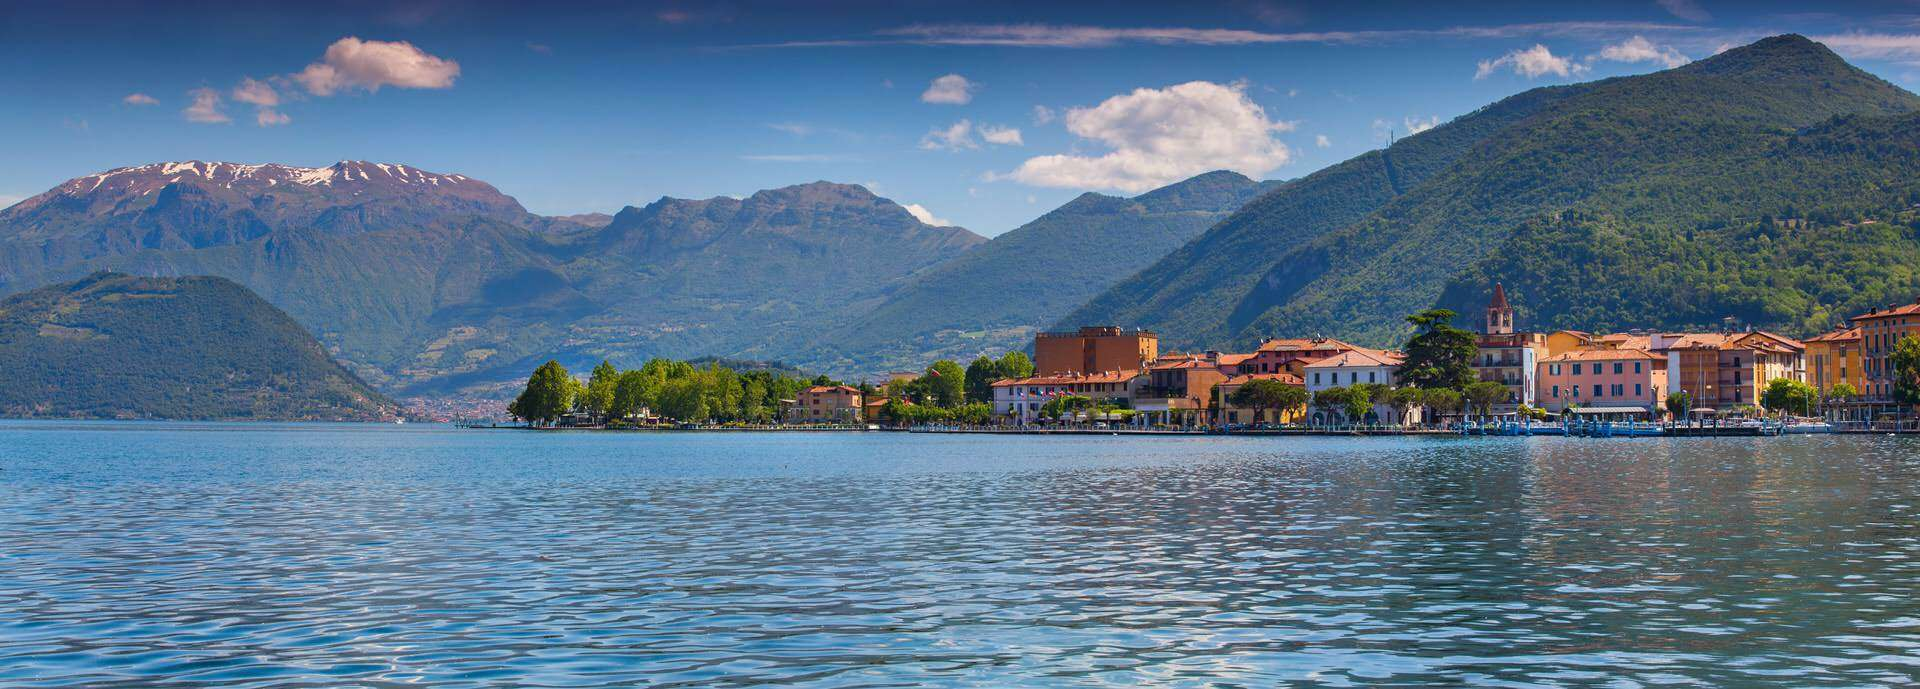 Panorama,Of,The,City,Clusane,,A,Bright,Sunny,Day.,Italy,